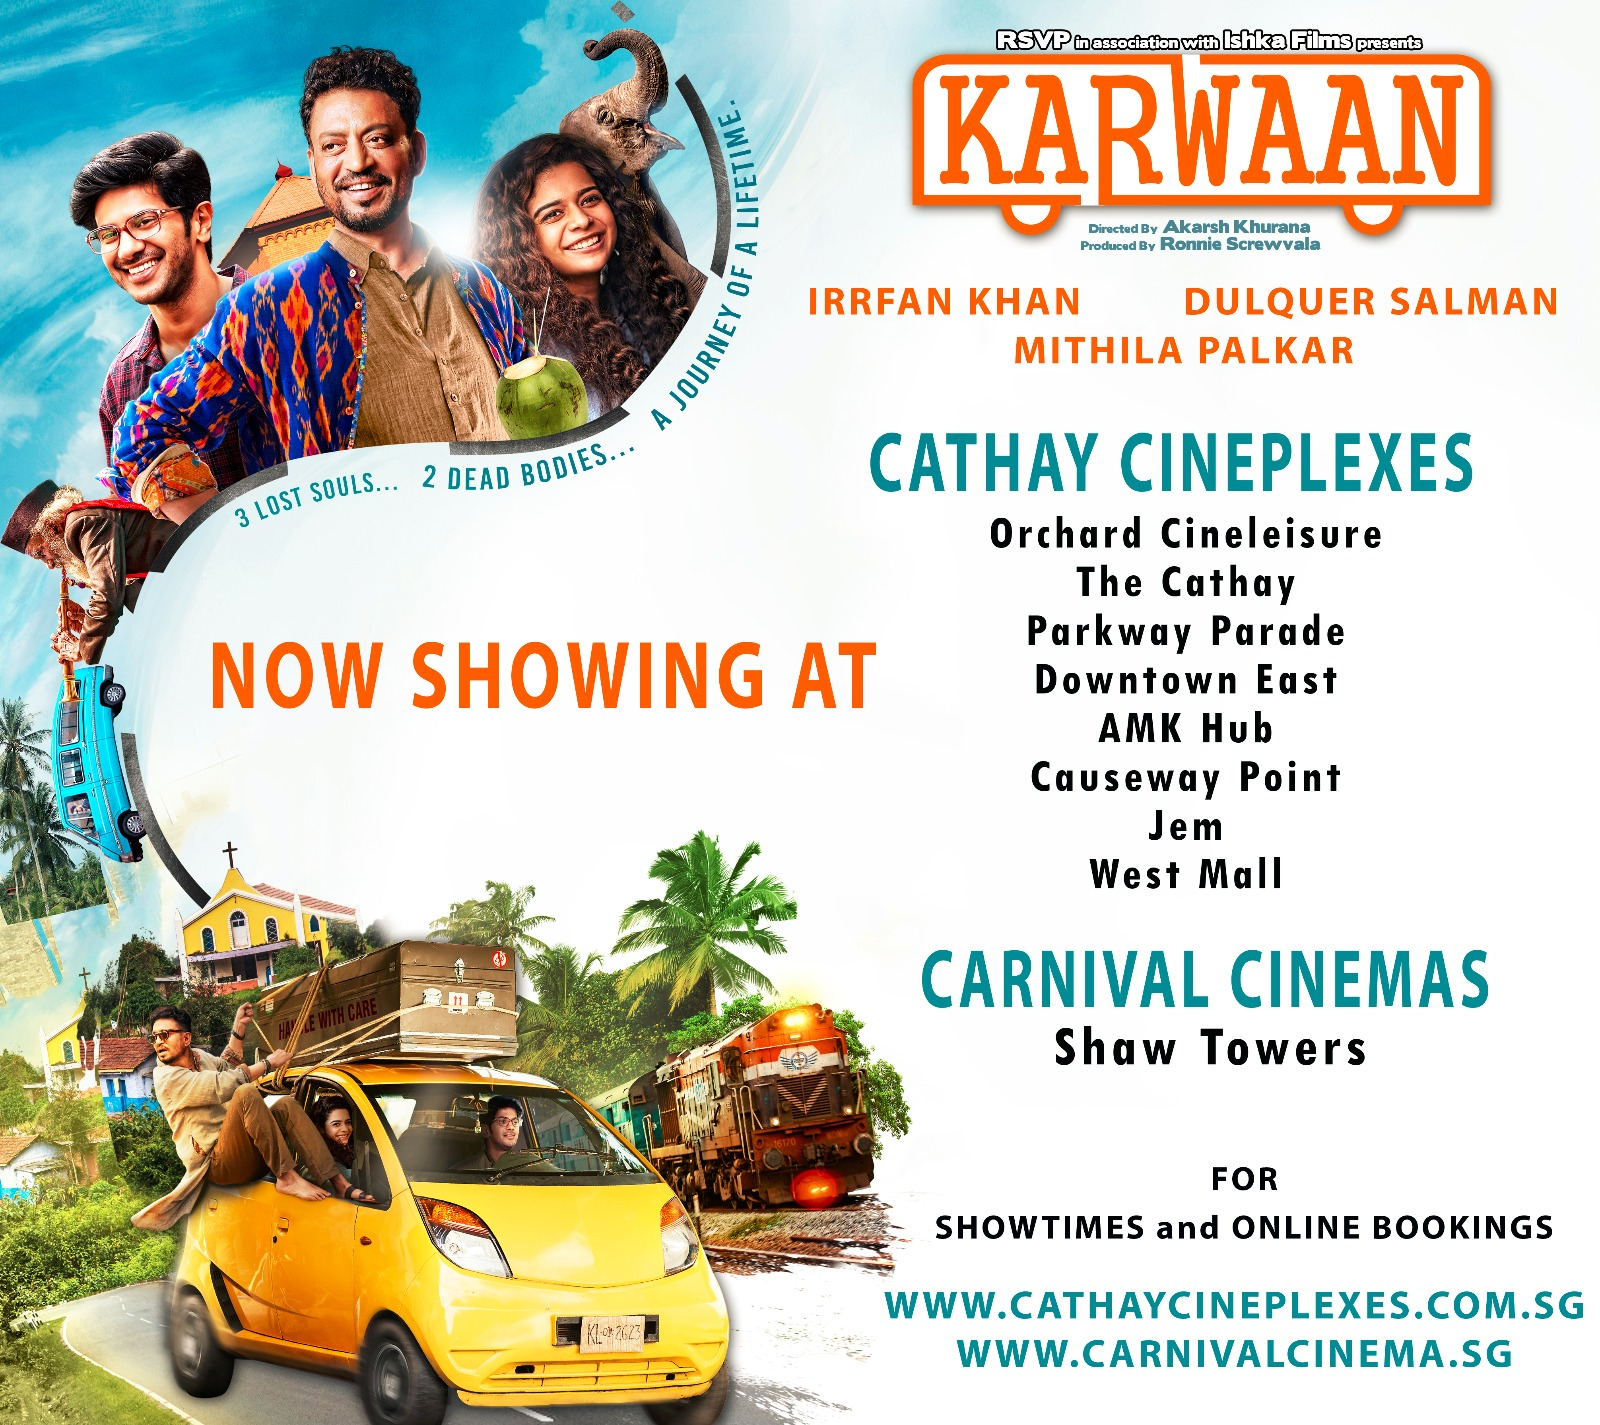 Catch Karwaan in these Cathay Cineplexes across Singapore. Photo courtesy: Cathay Cineplexes